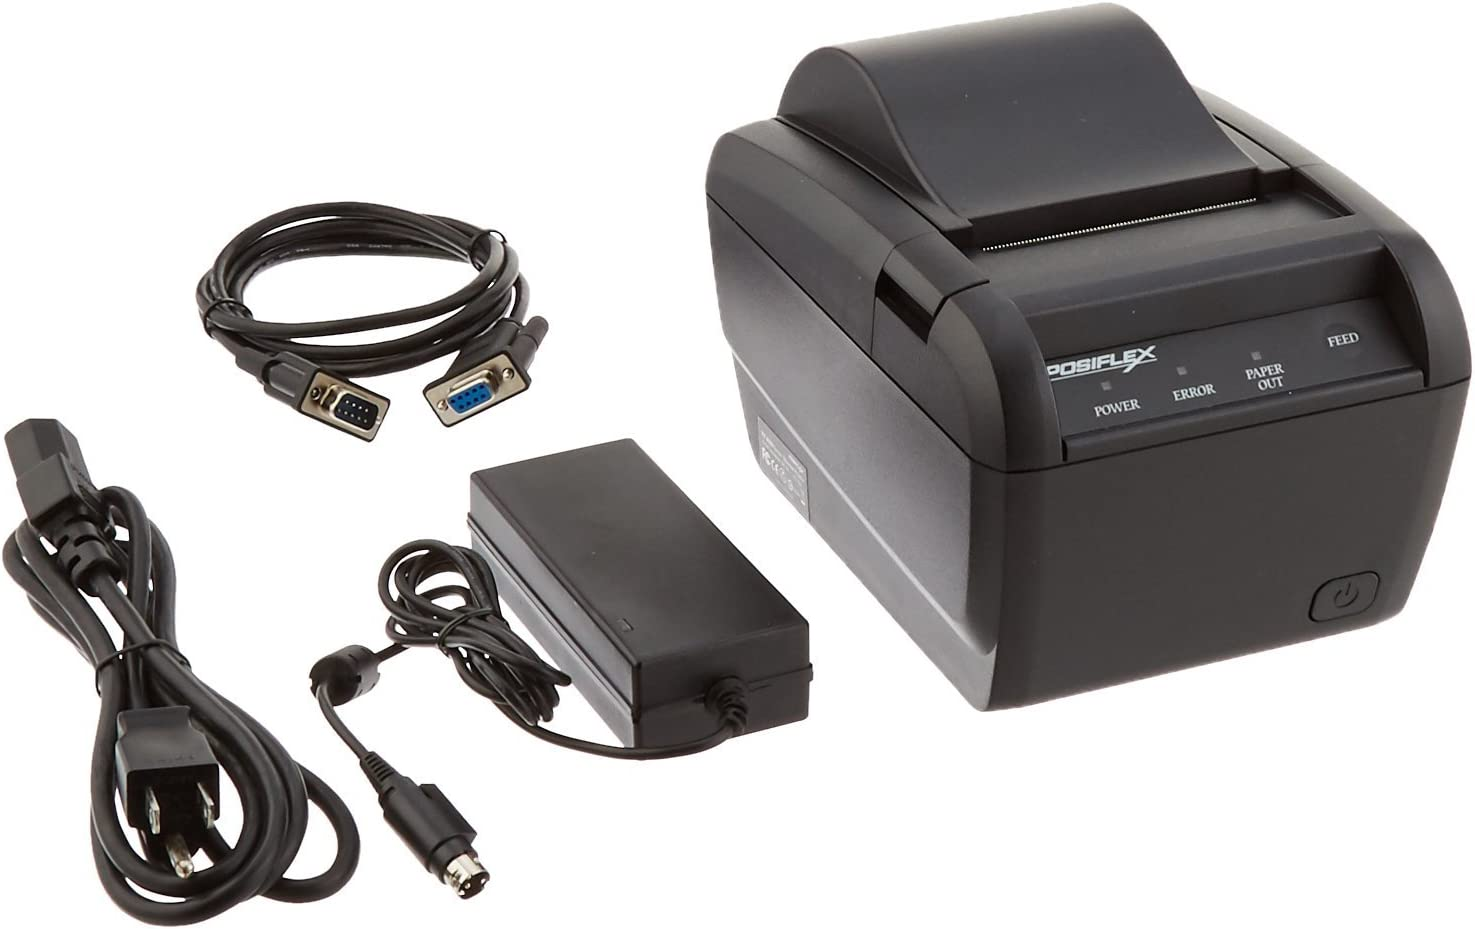 Posiflex PP8000S10410UD Series PP8000 Printer, Aura Thermal Printer, Serial Cable and Power Supply Included, Comes with Serial, Parallel and USB Interface Installed, Black